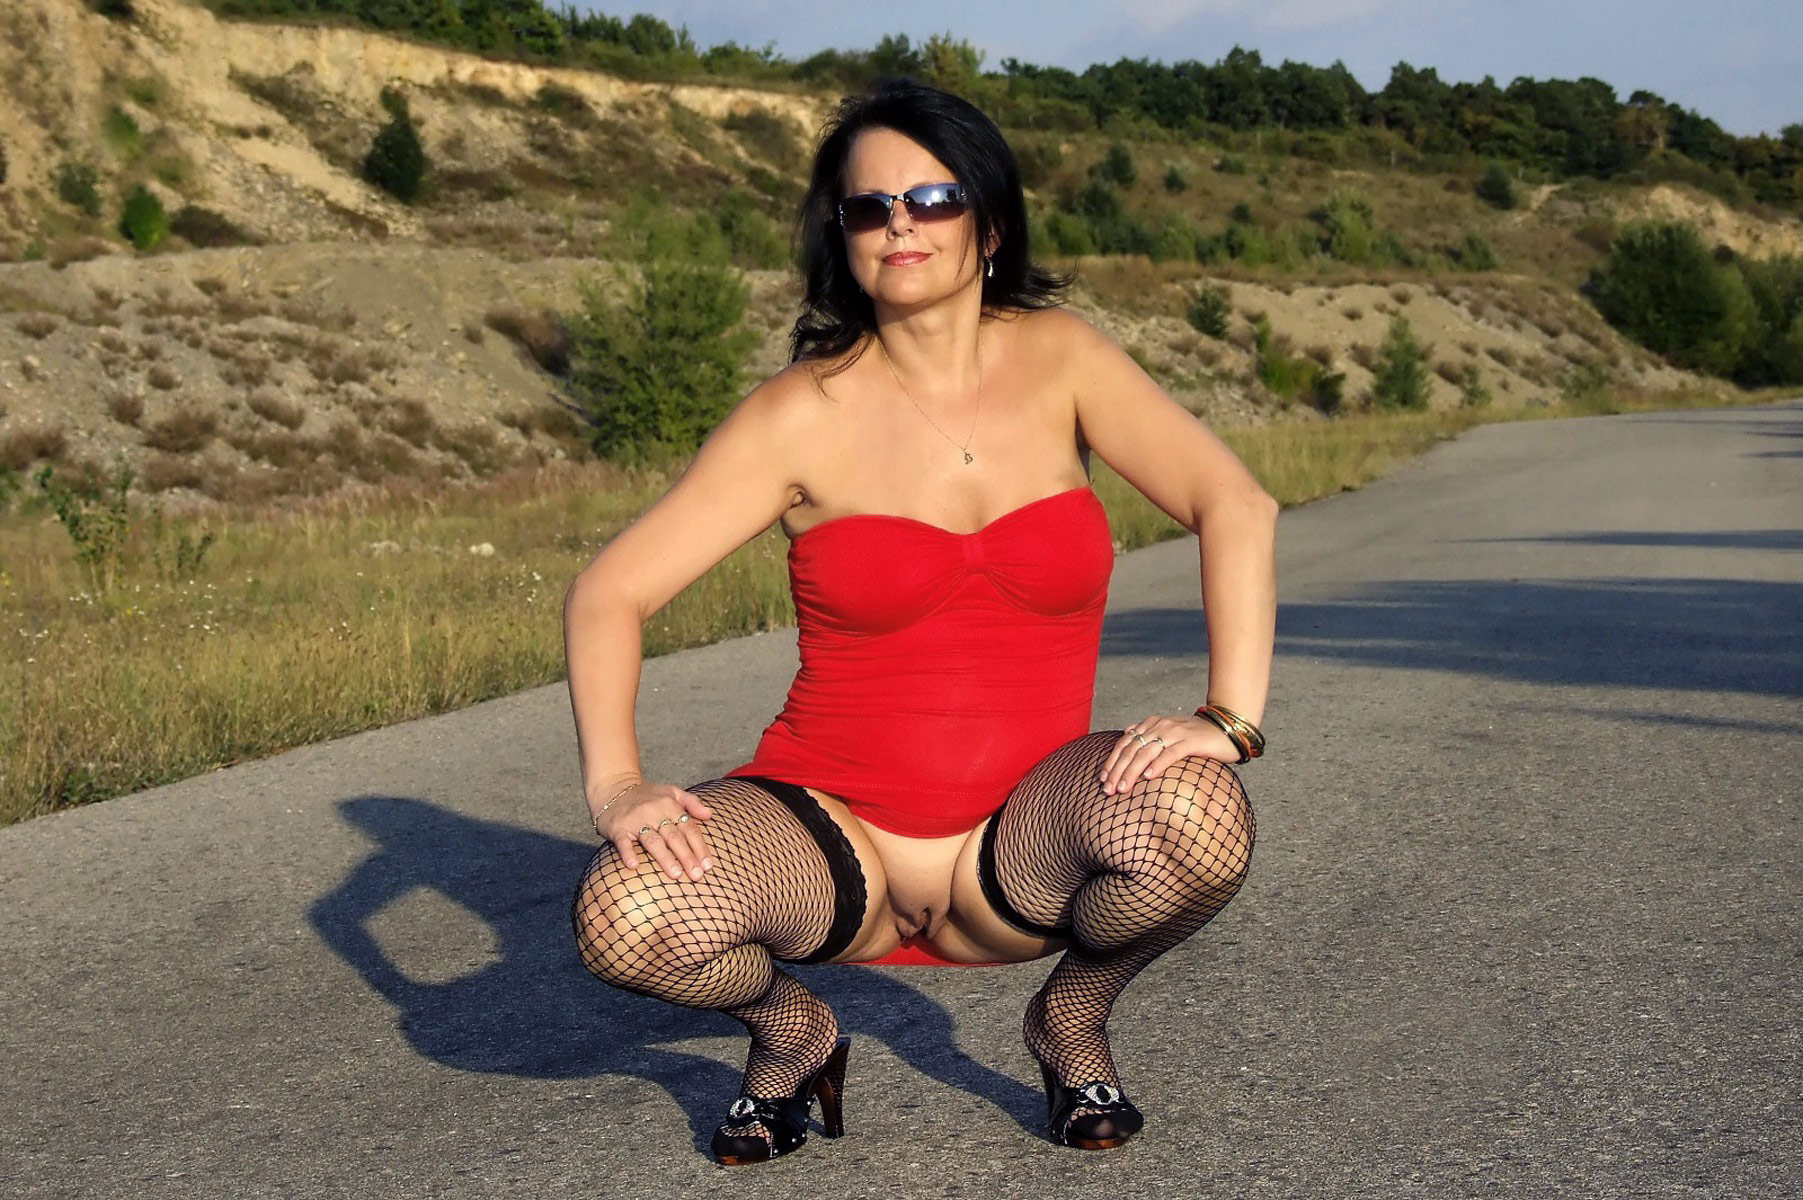 Mature flashing outdoors one sexy